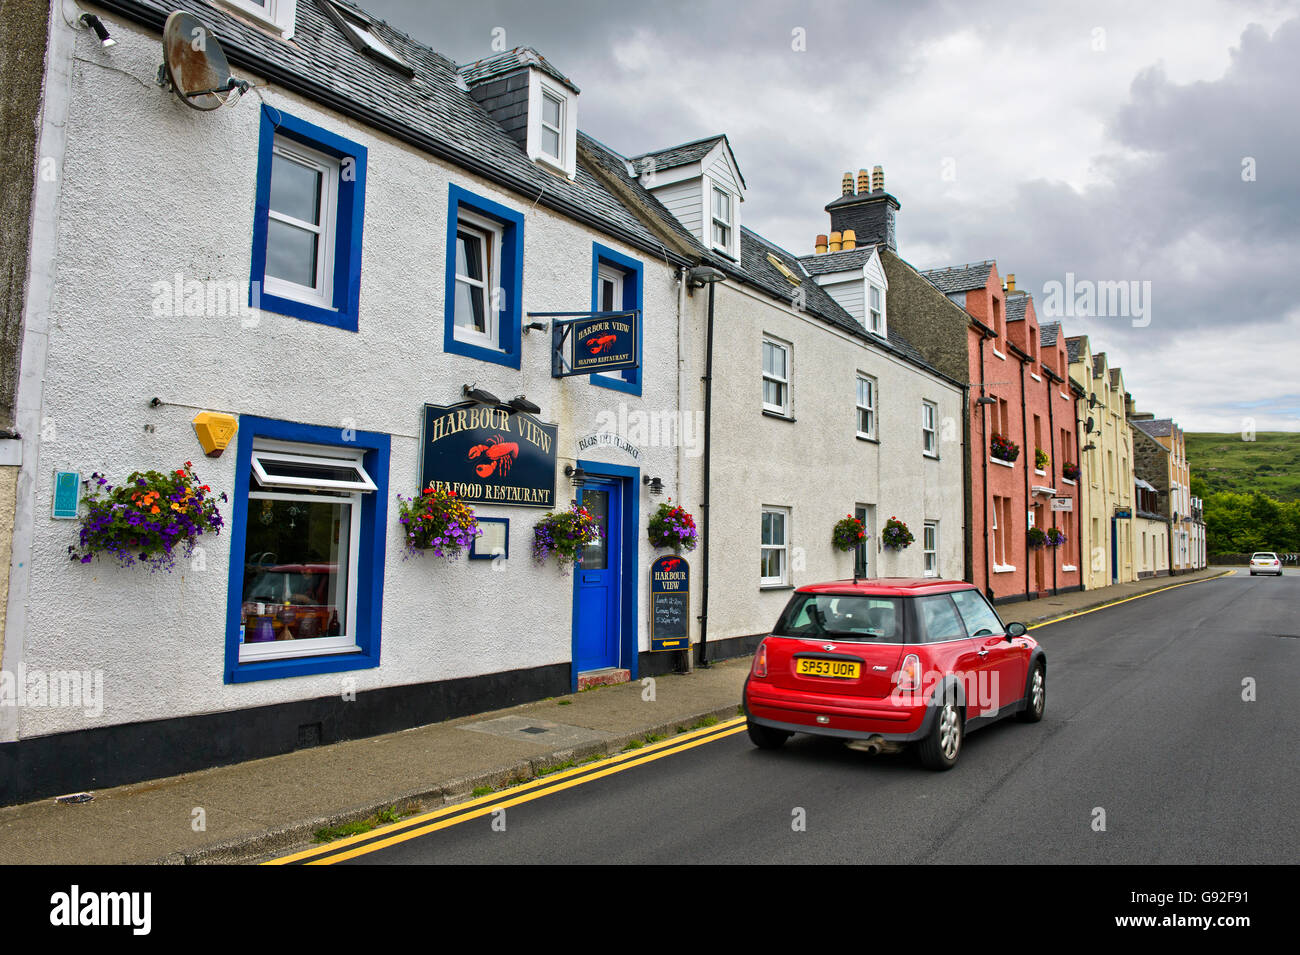 Red Mini car passing by the Harbour View Seafood Restaurant, Portree, Isle of Skye, Scotland, Great Britain - Stock Image